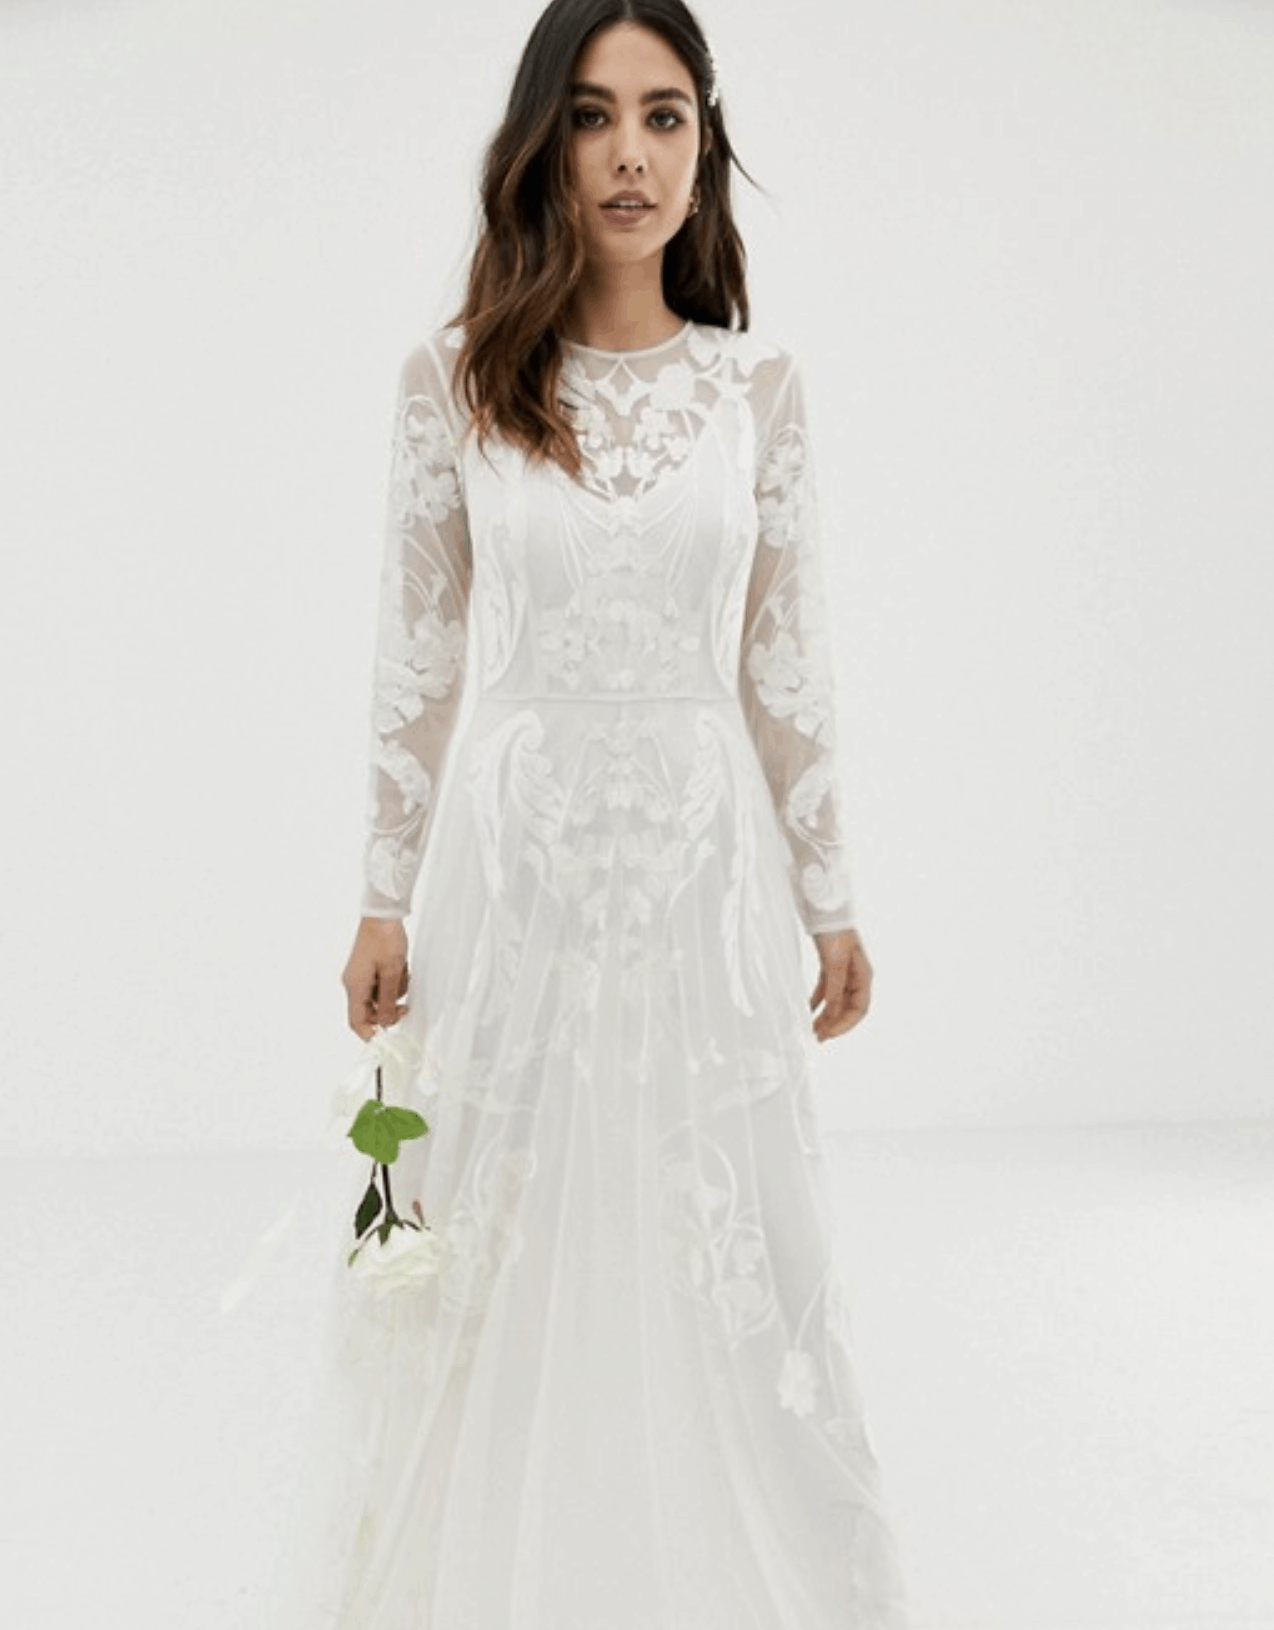 cc635eeecf7 Cheap Affordable Bridal Gowns and Wedding Dress ASOS Edition Nouveau  Embroidered Wedding Dresses